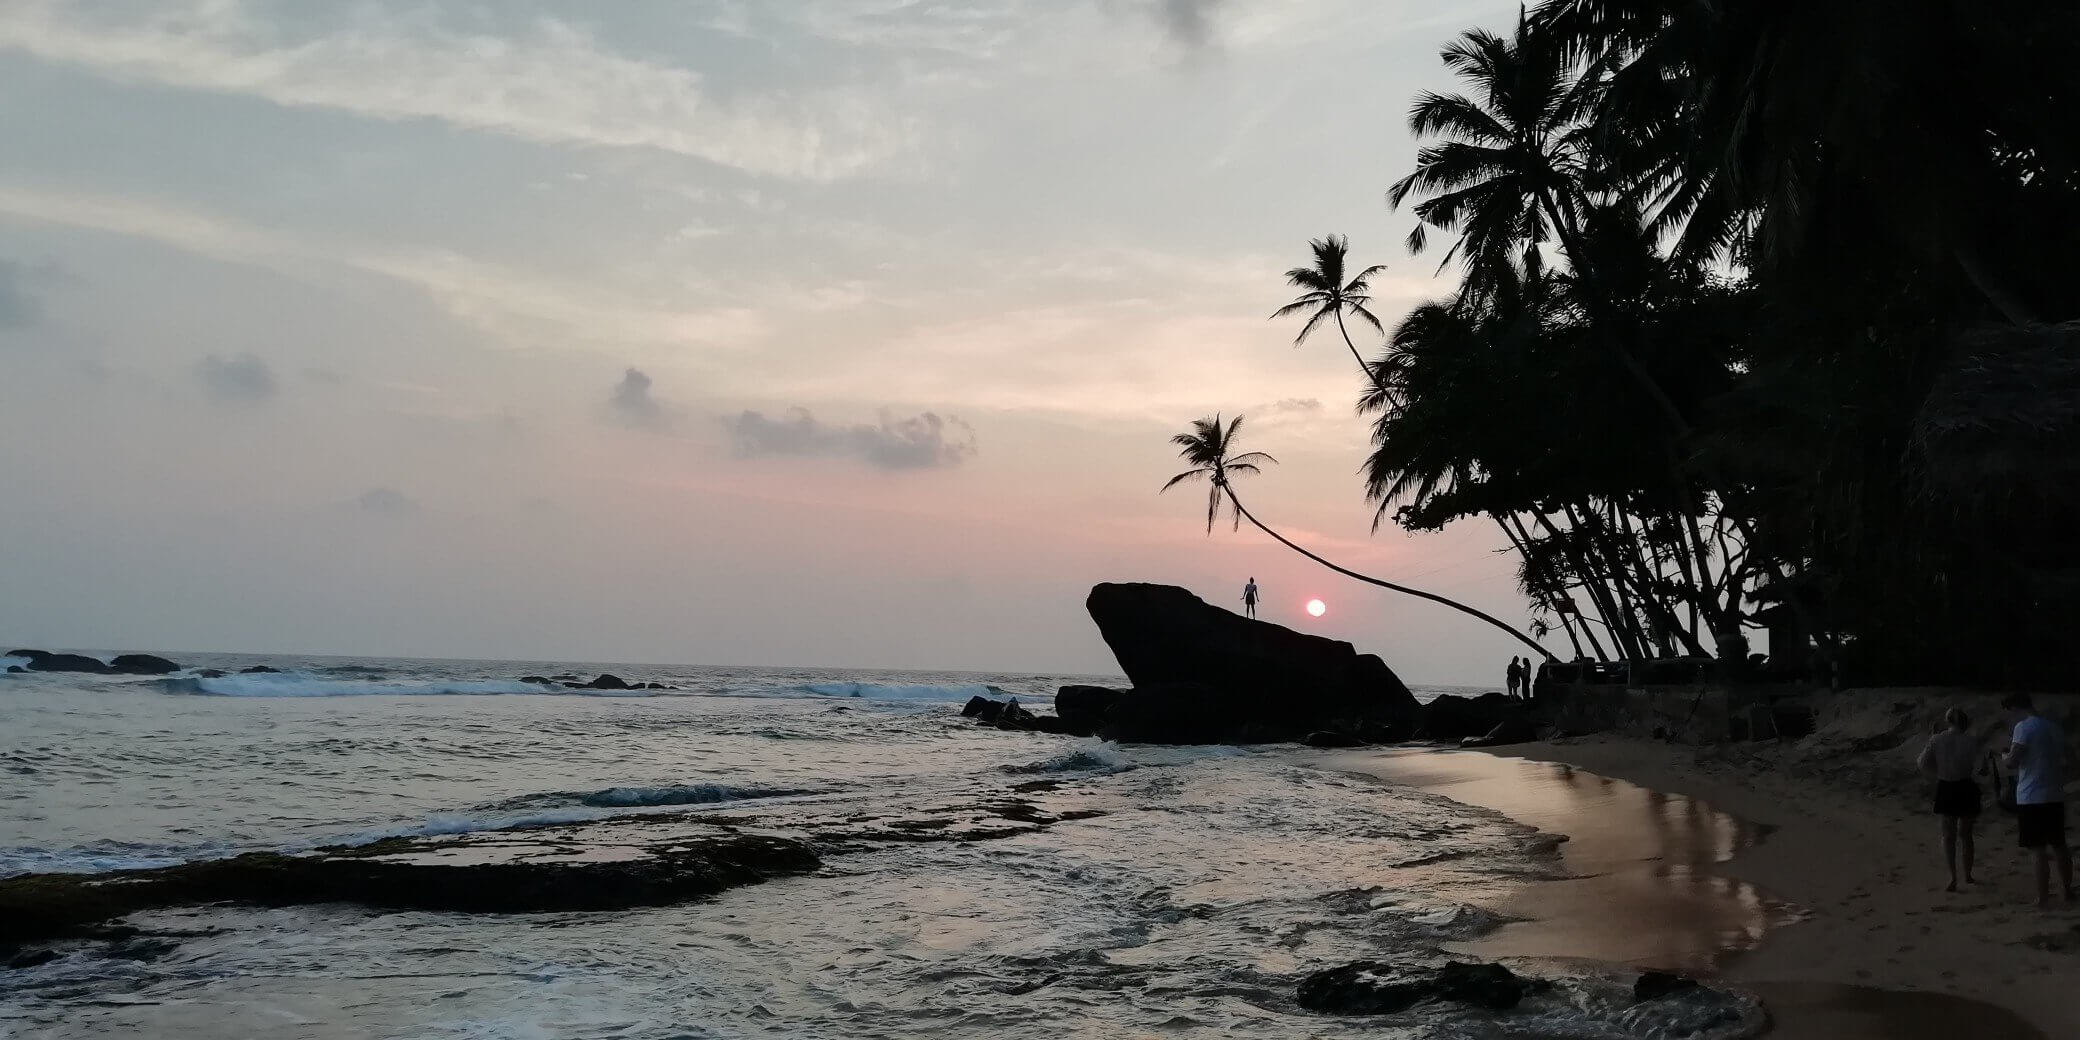 Mirissa, Unawatuna or Hikkaduwa? Where to spend a couple of weeks on the south coast of Sri Lanka